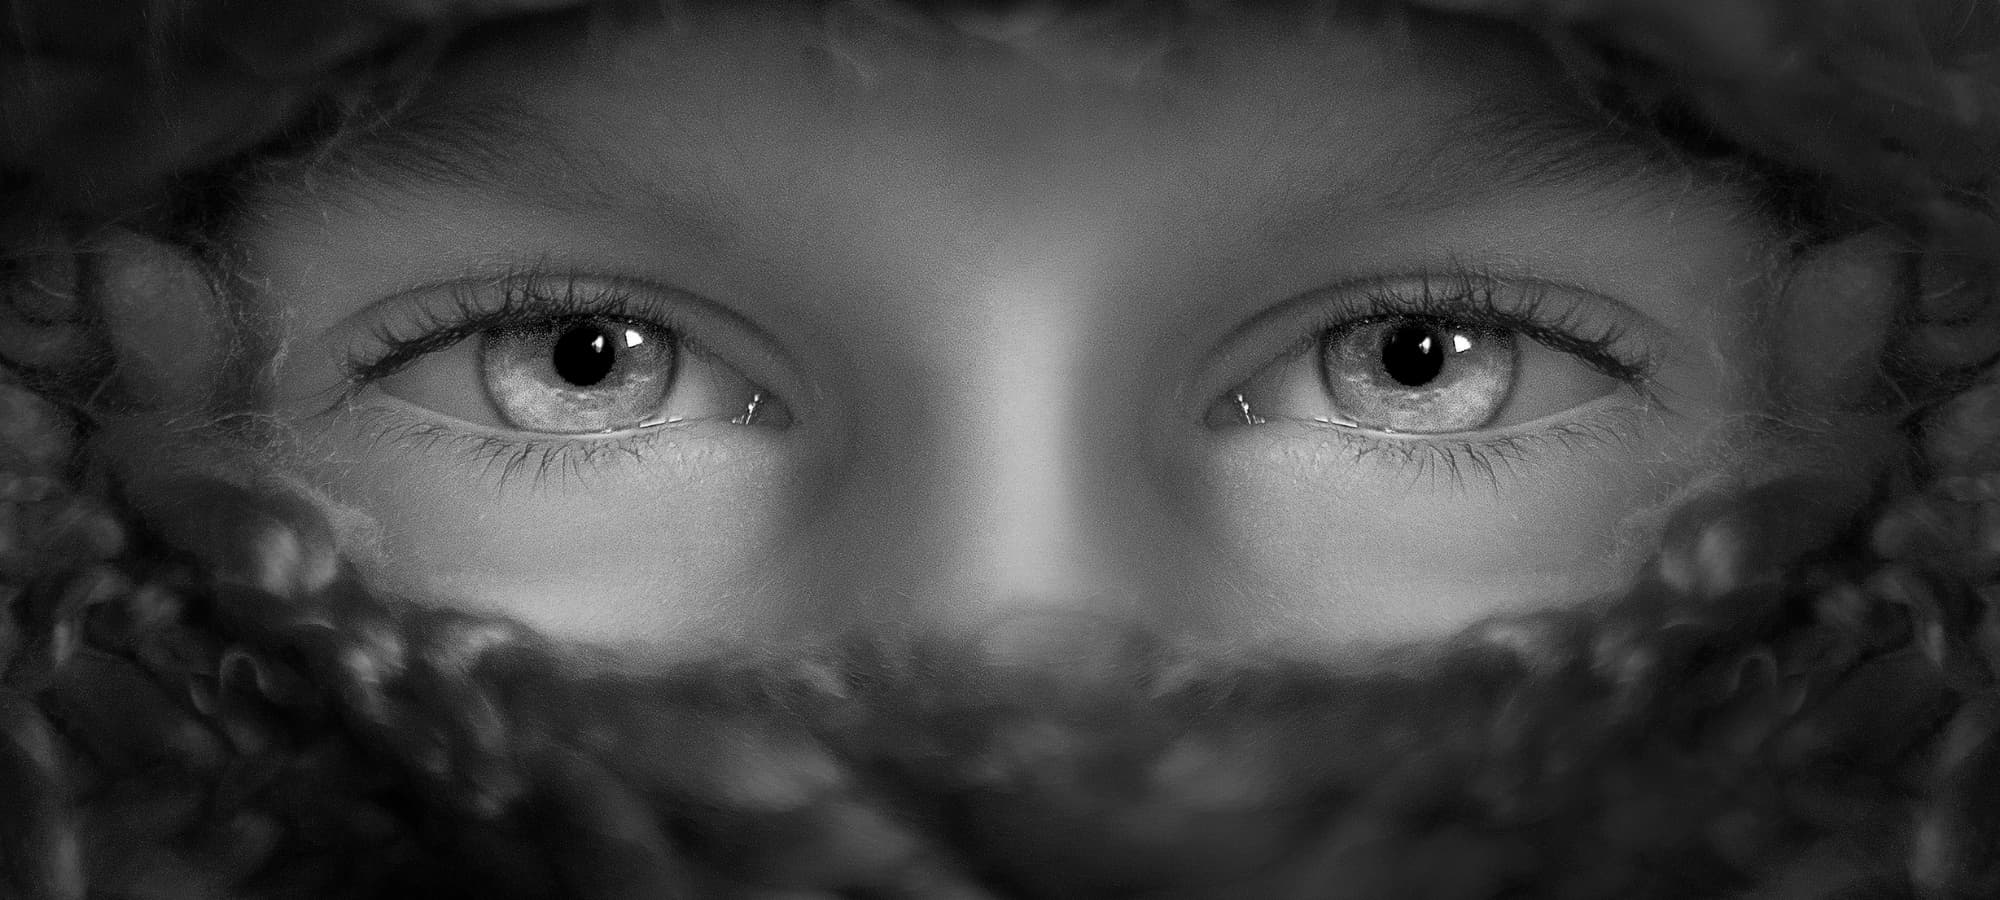 a child's eyes peering out from beneath a blanket